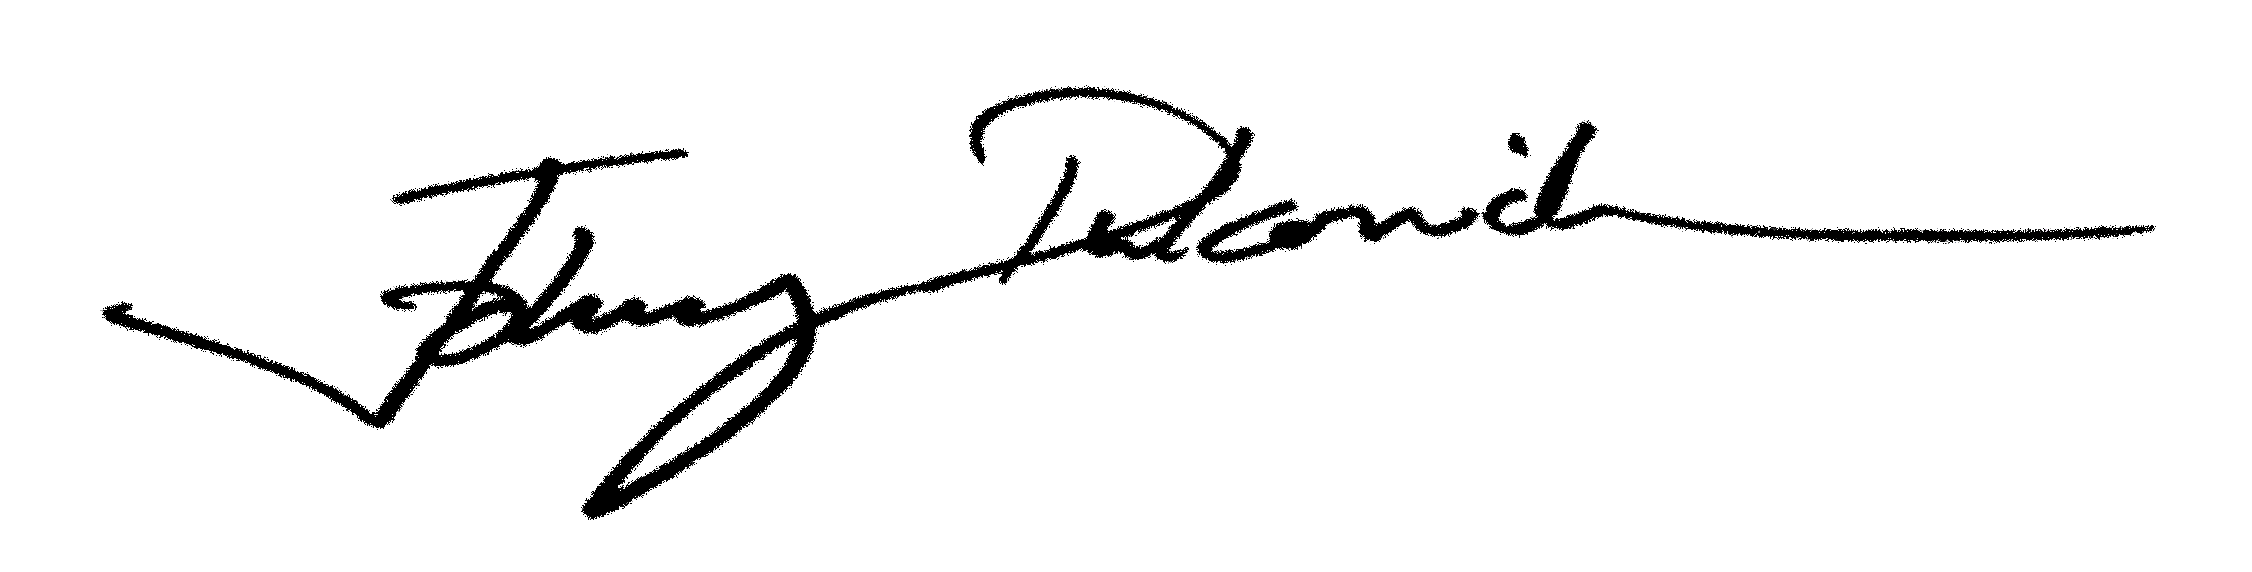 Johnny Dukovich's Signature